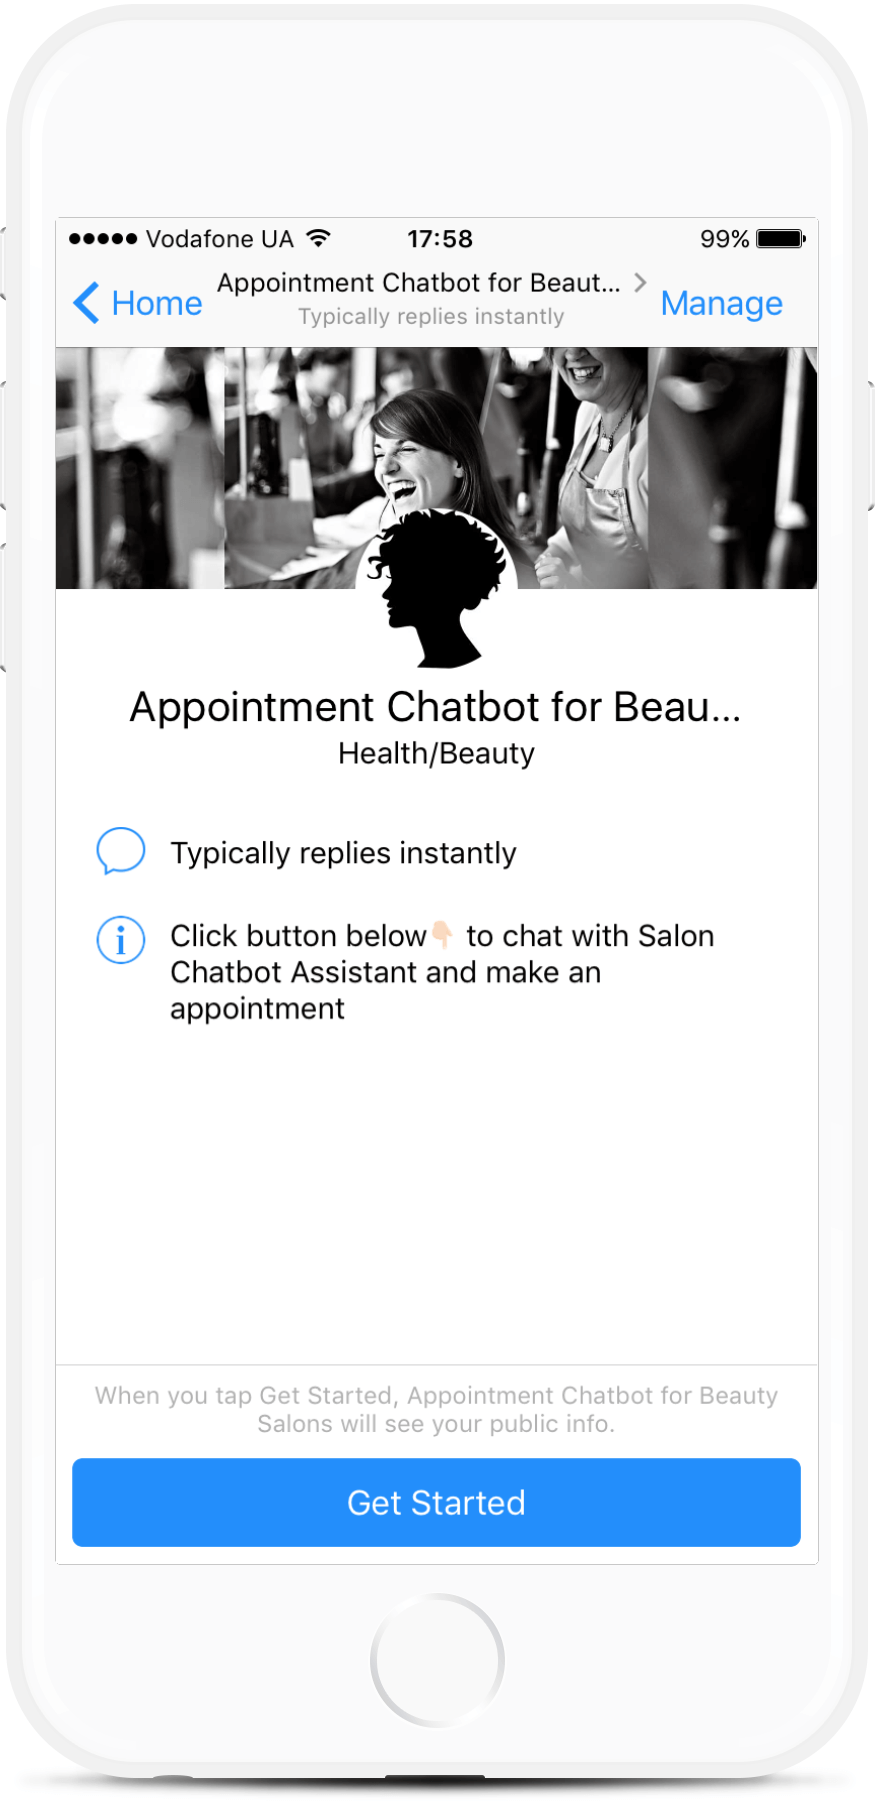 Facebook Appointment Chatbot for Hair Salon